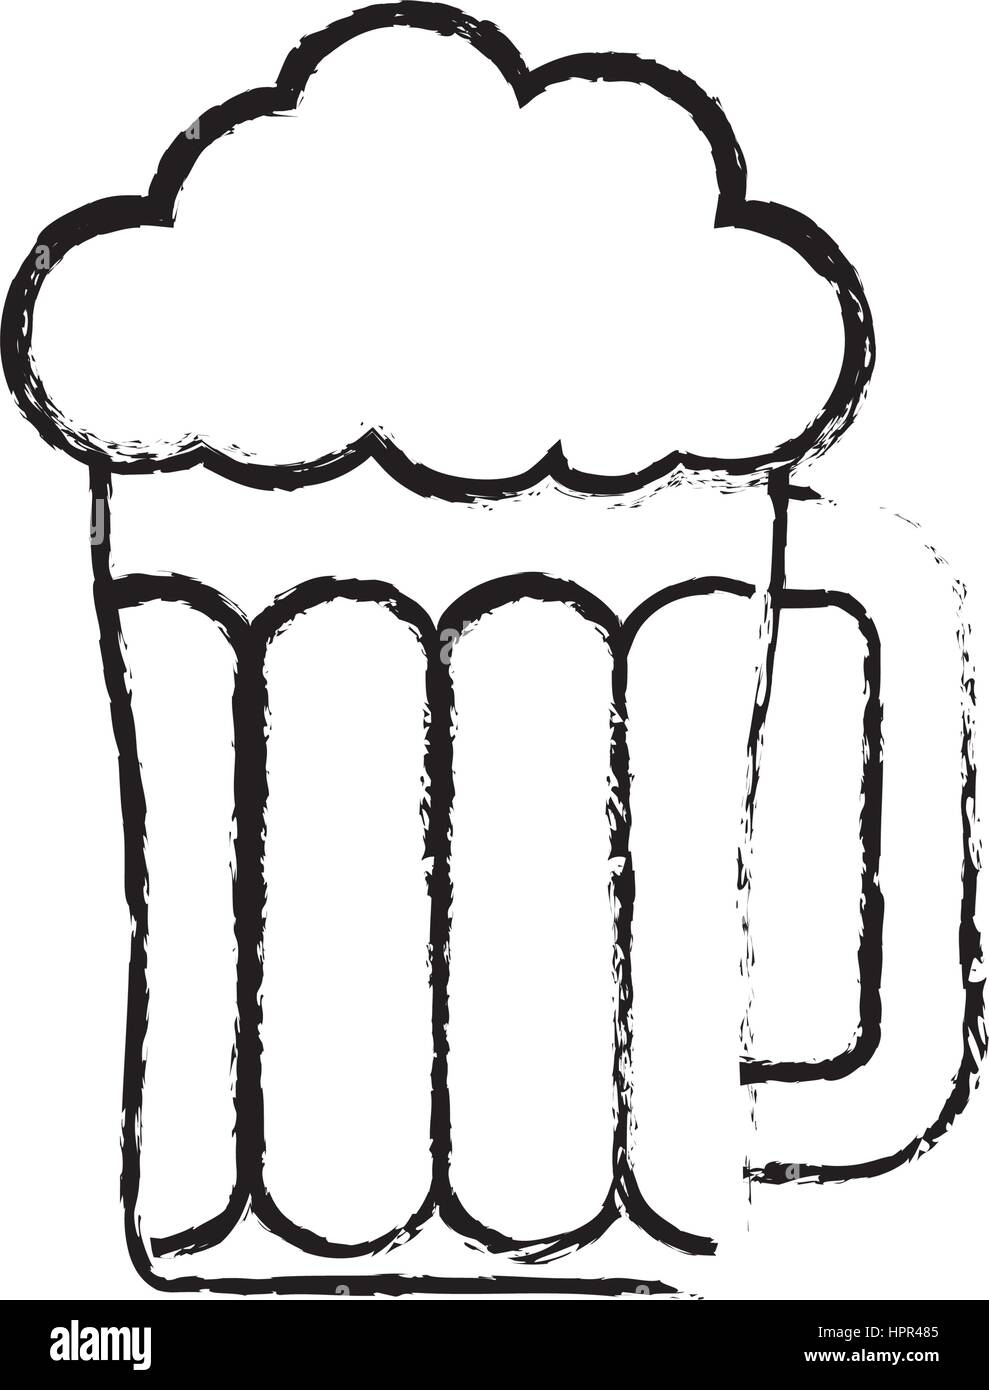 Delicious Beer Draw Stock Photos Delicious Beer Draw Stock Images